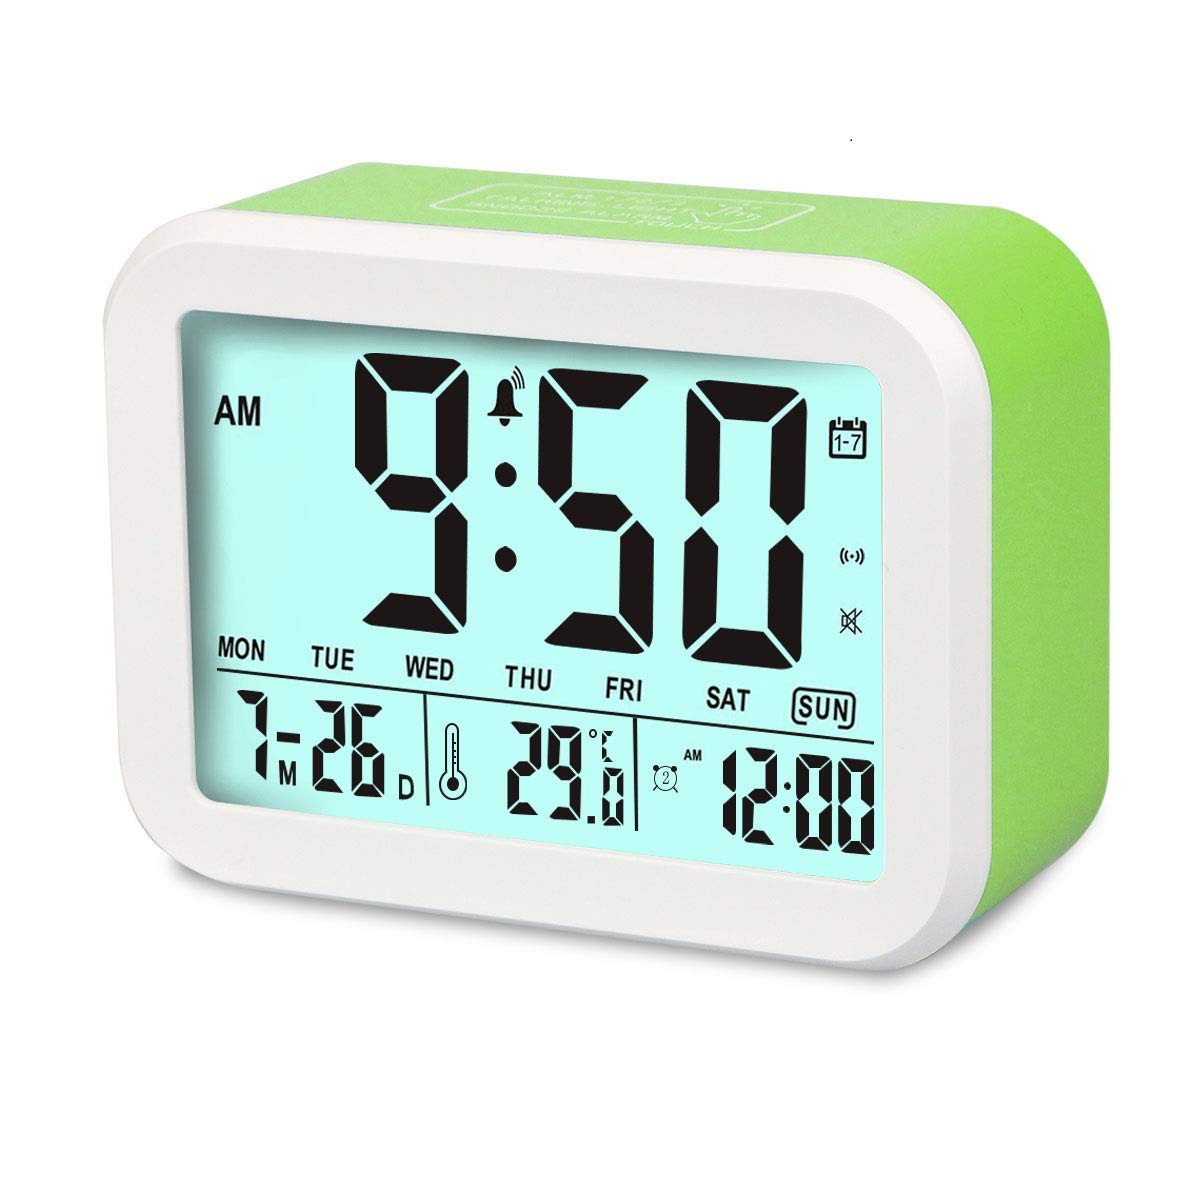 Aitey Digital Alarm Clock, Talking Clock with 3 Alarms, Optional Weekday Alarm, Intelligent Noctilucent & Snooze Function, Month Date & Temperature Display for Adults, Kids & Teens (Green)